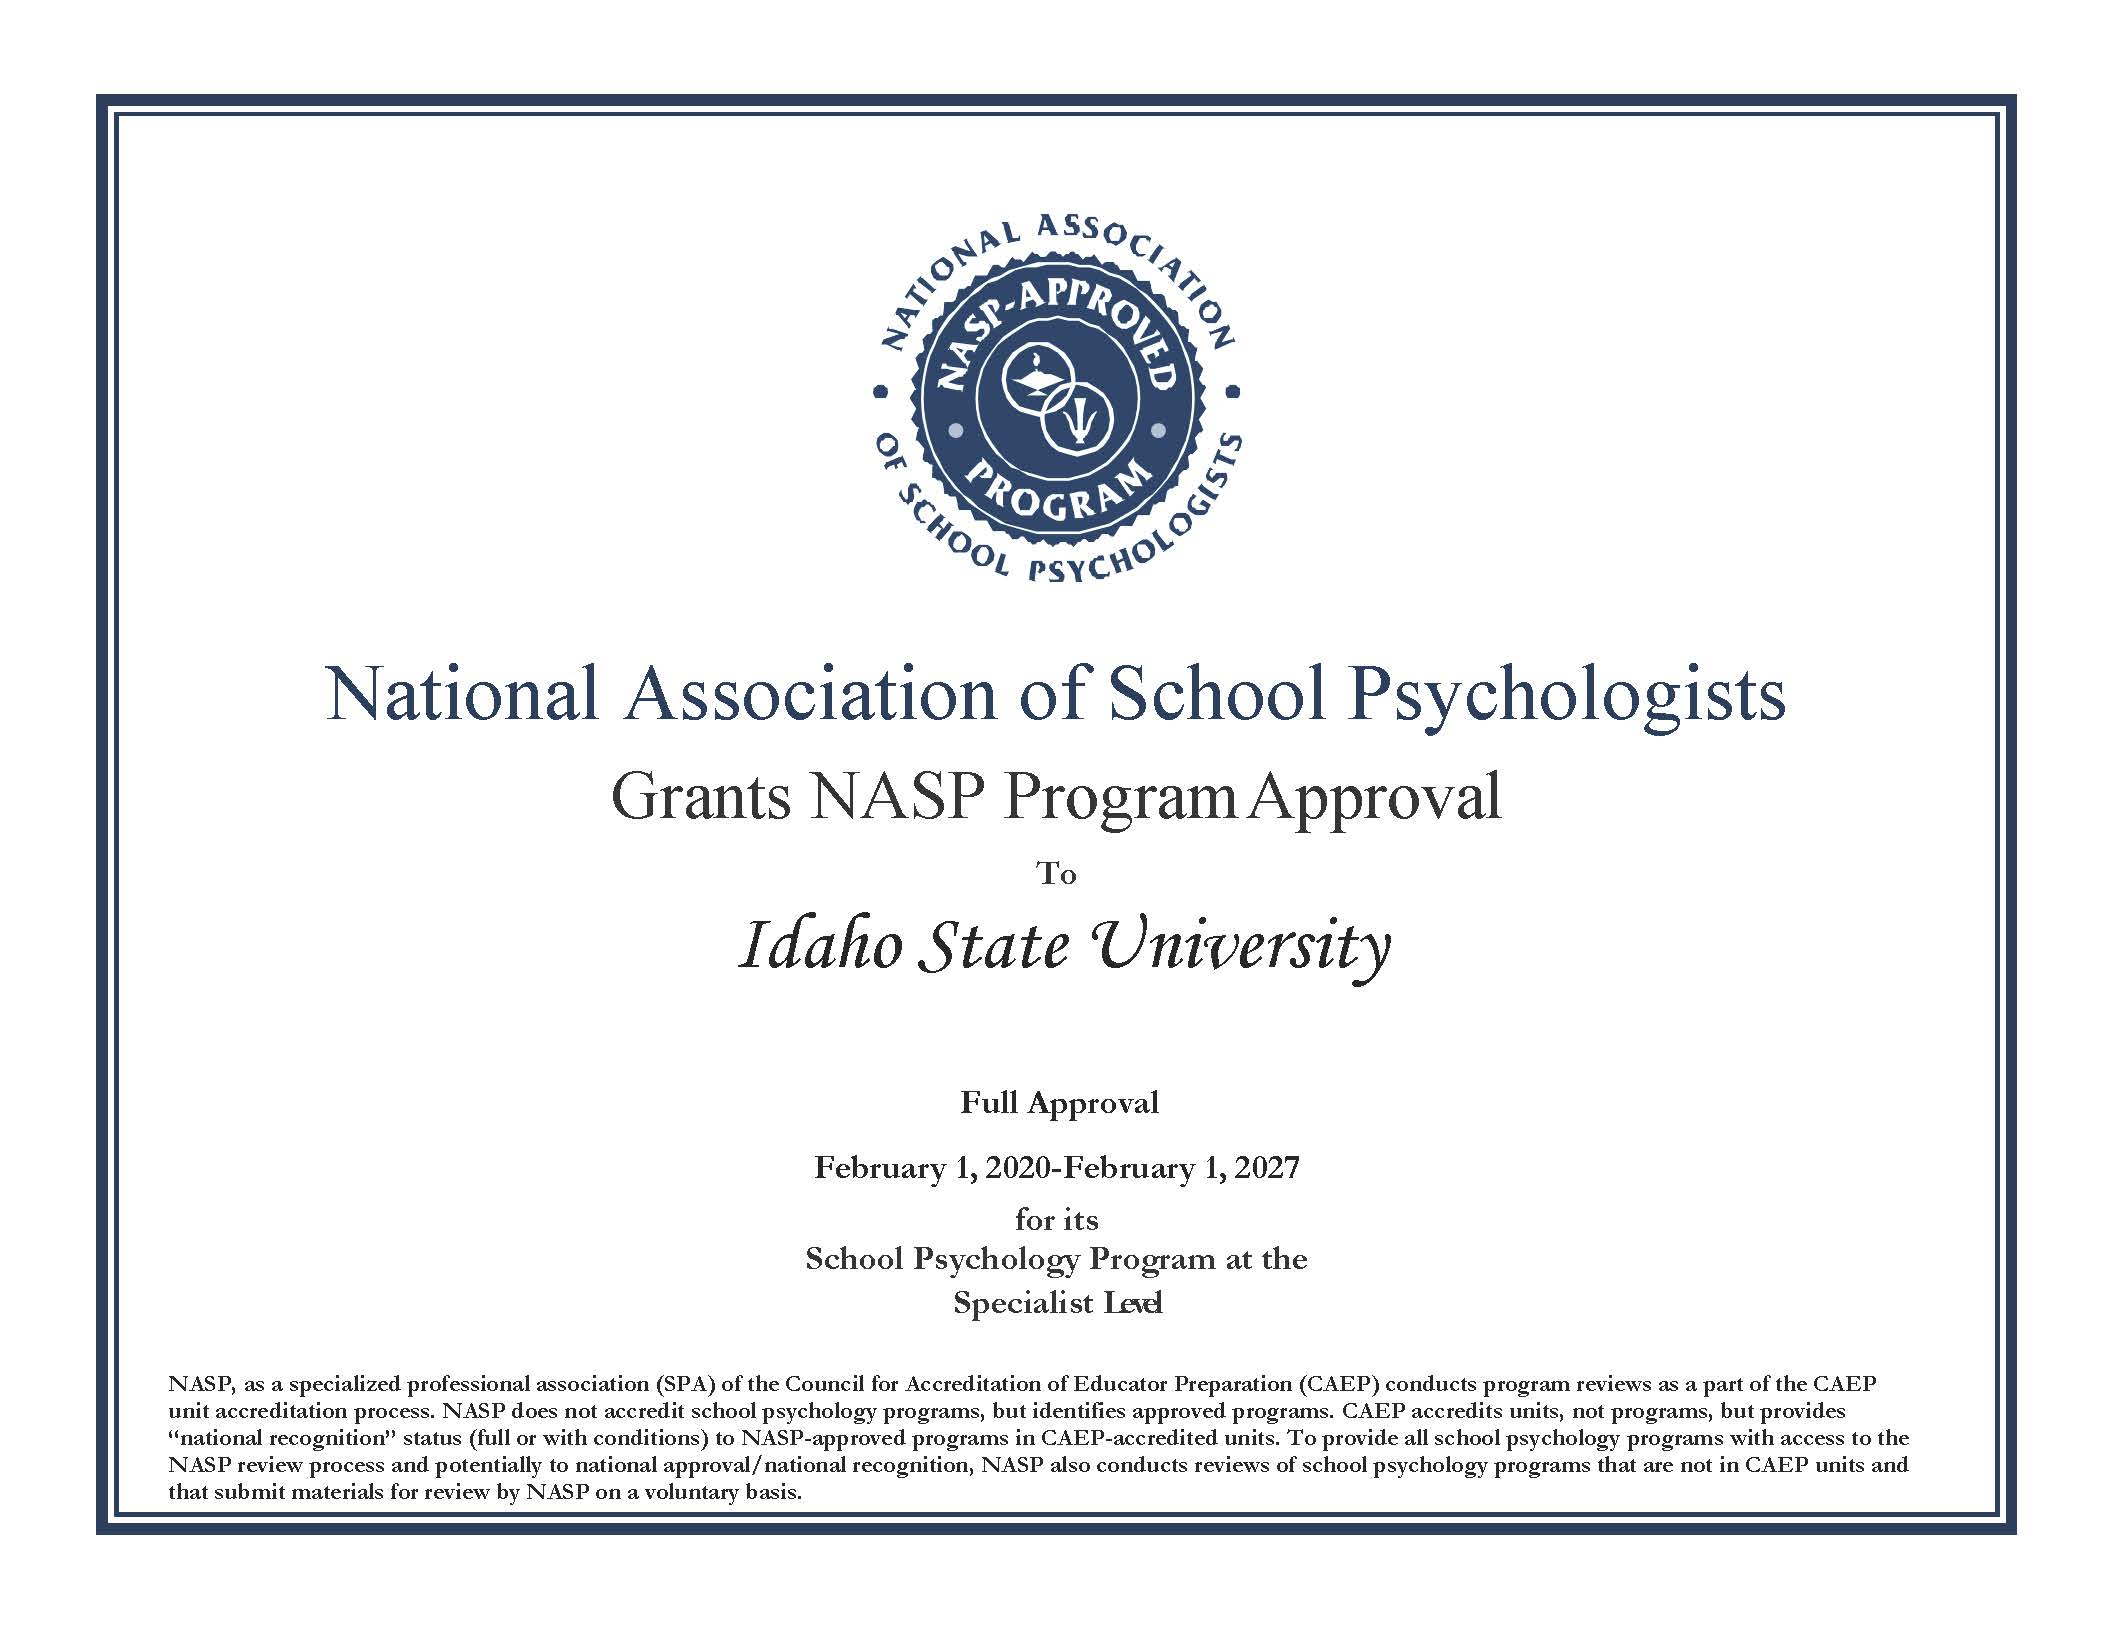 National Association of School Psychologists NASP Program Approval